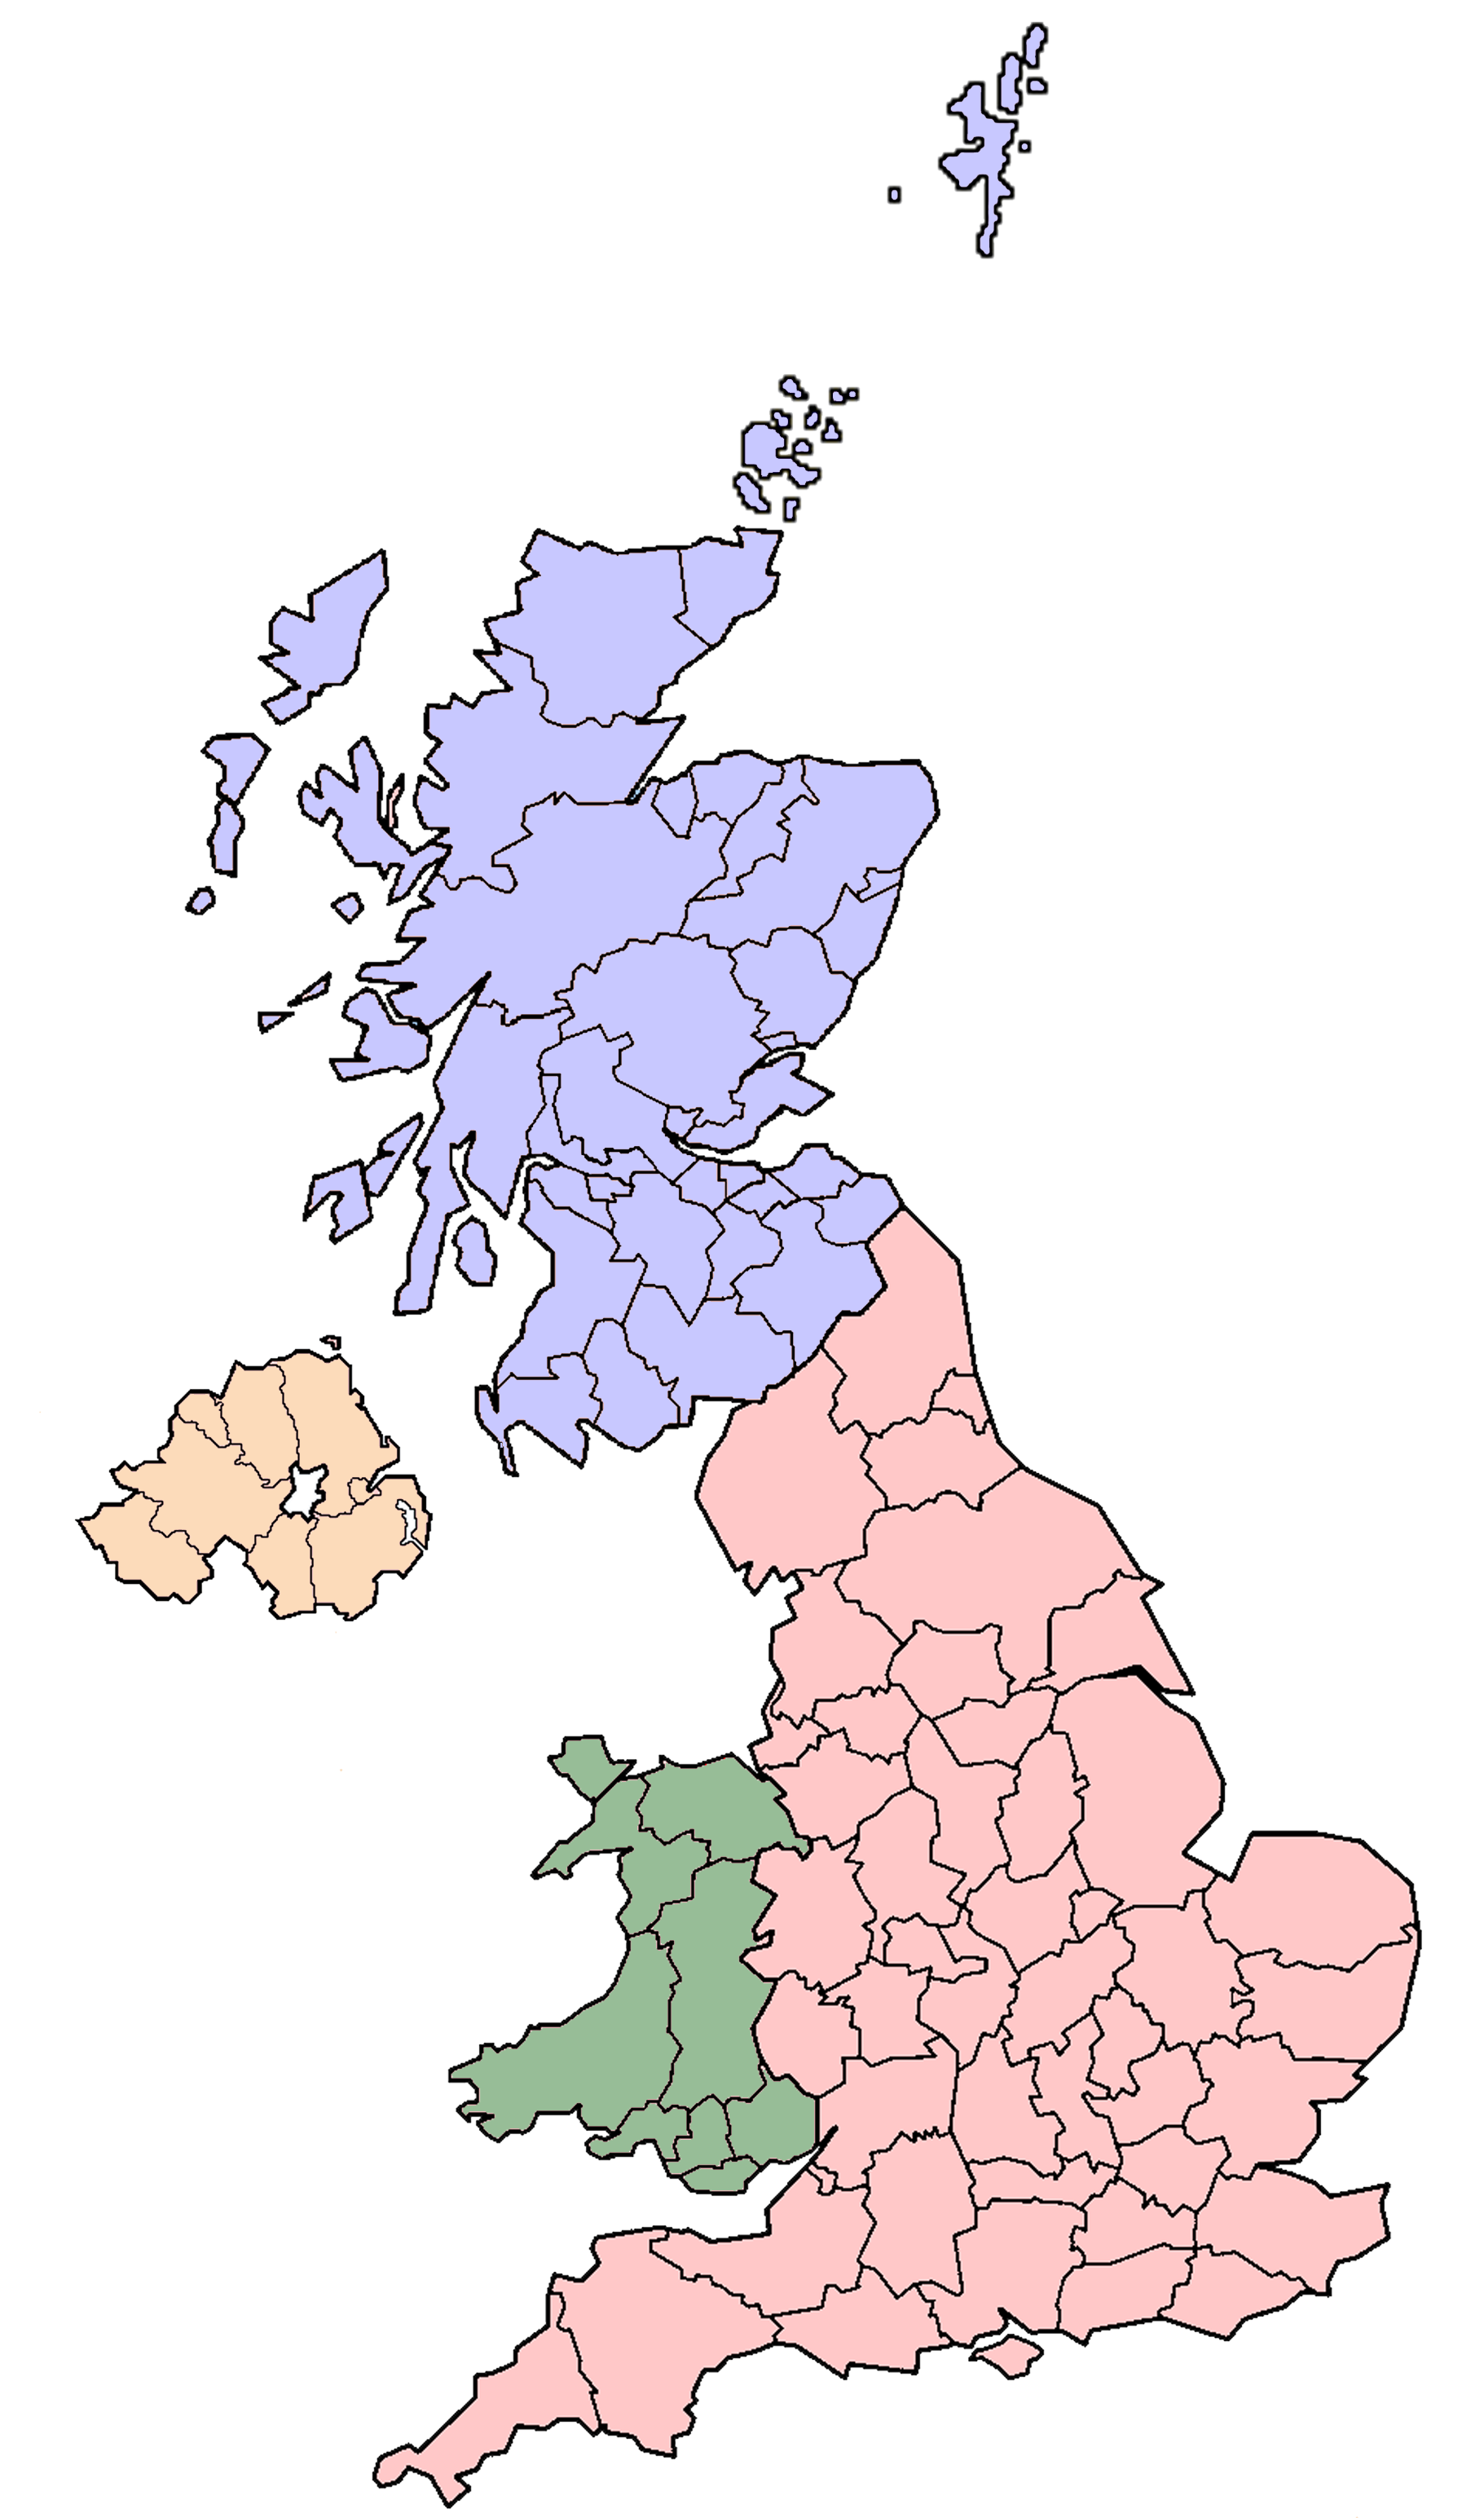 Resultado de imagen de MAP OF UK COUNTRIES WITHOUT NAMES